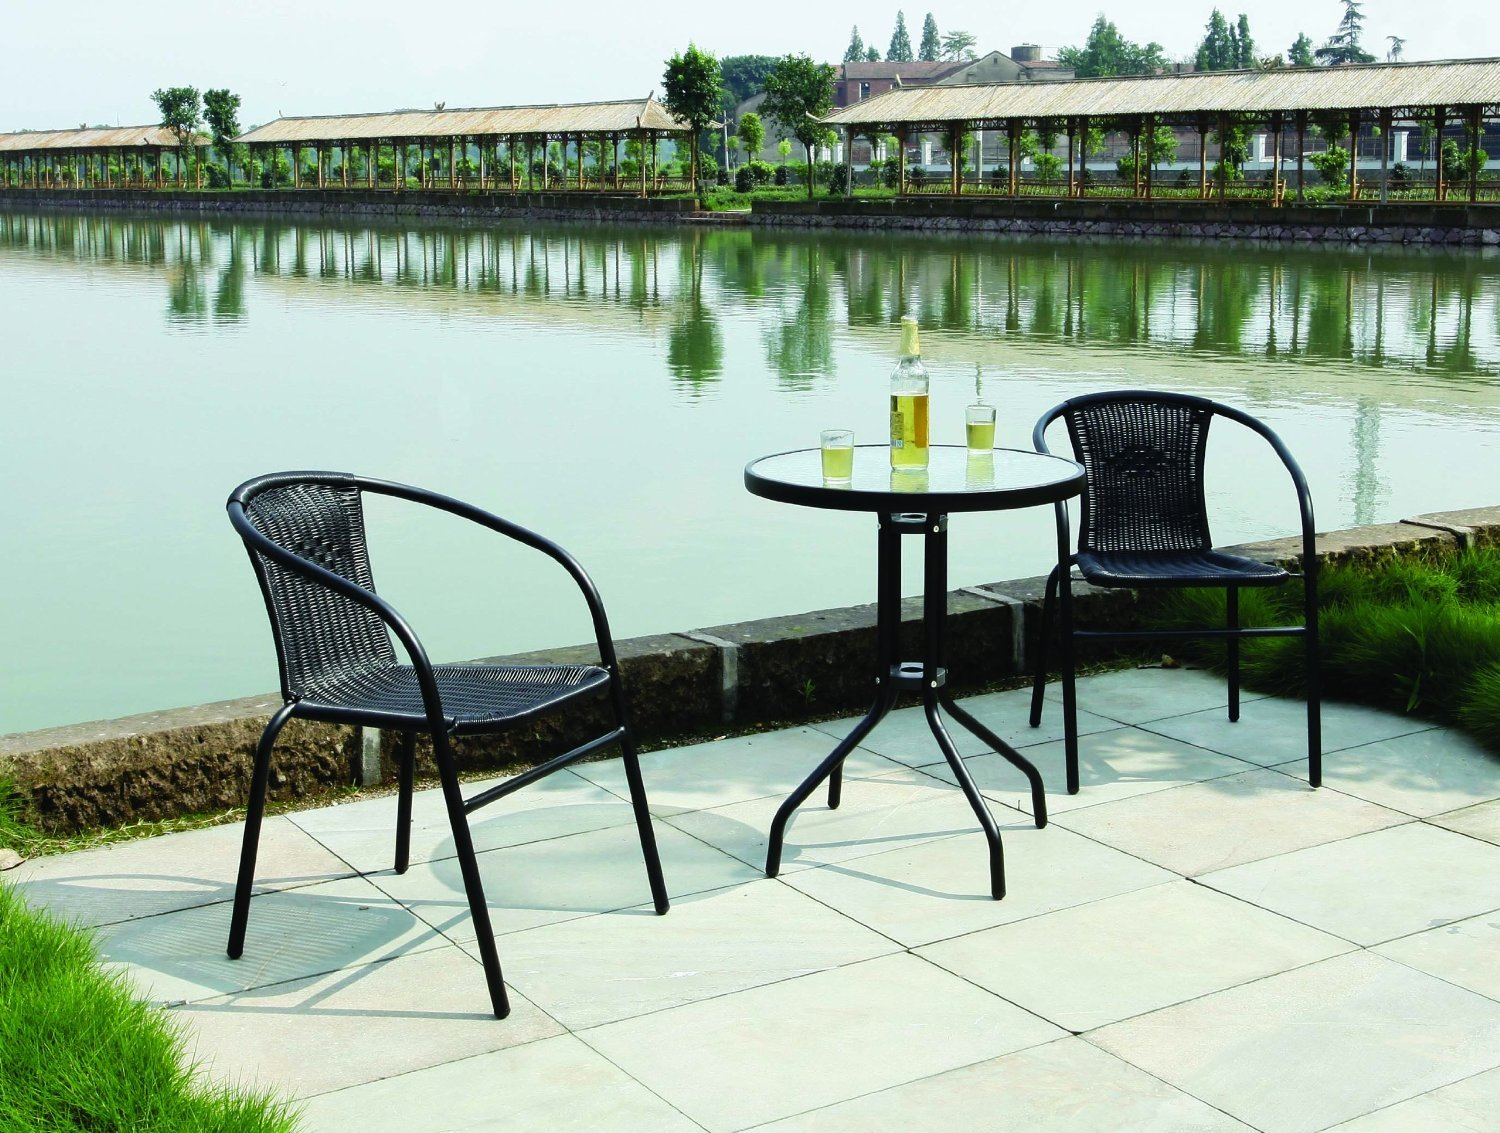 Amazing Garden Patio All Weather Black Wicker 3 Piece Bistro Set Patio Outdoor  Furniture: Amazon.co.uk: Garden U0026 Outdoors Part 25